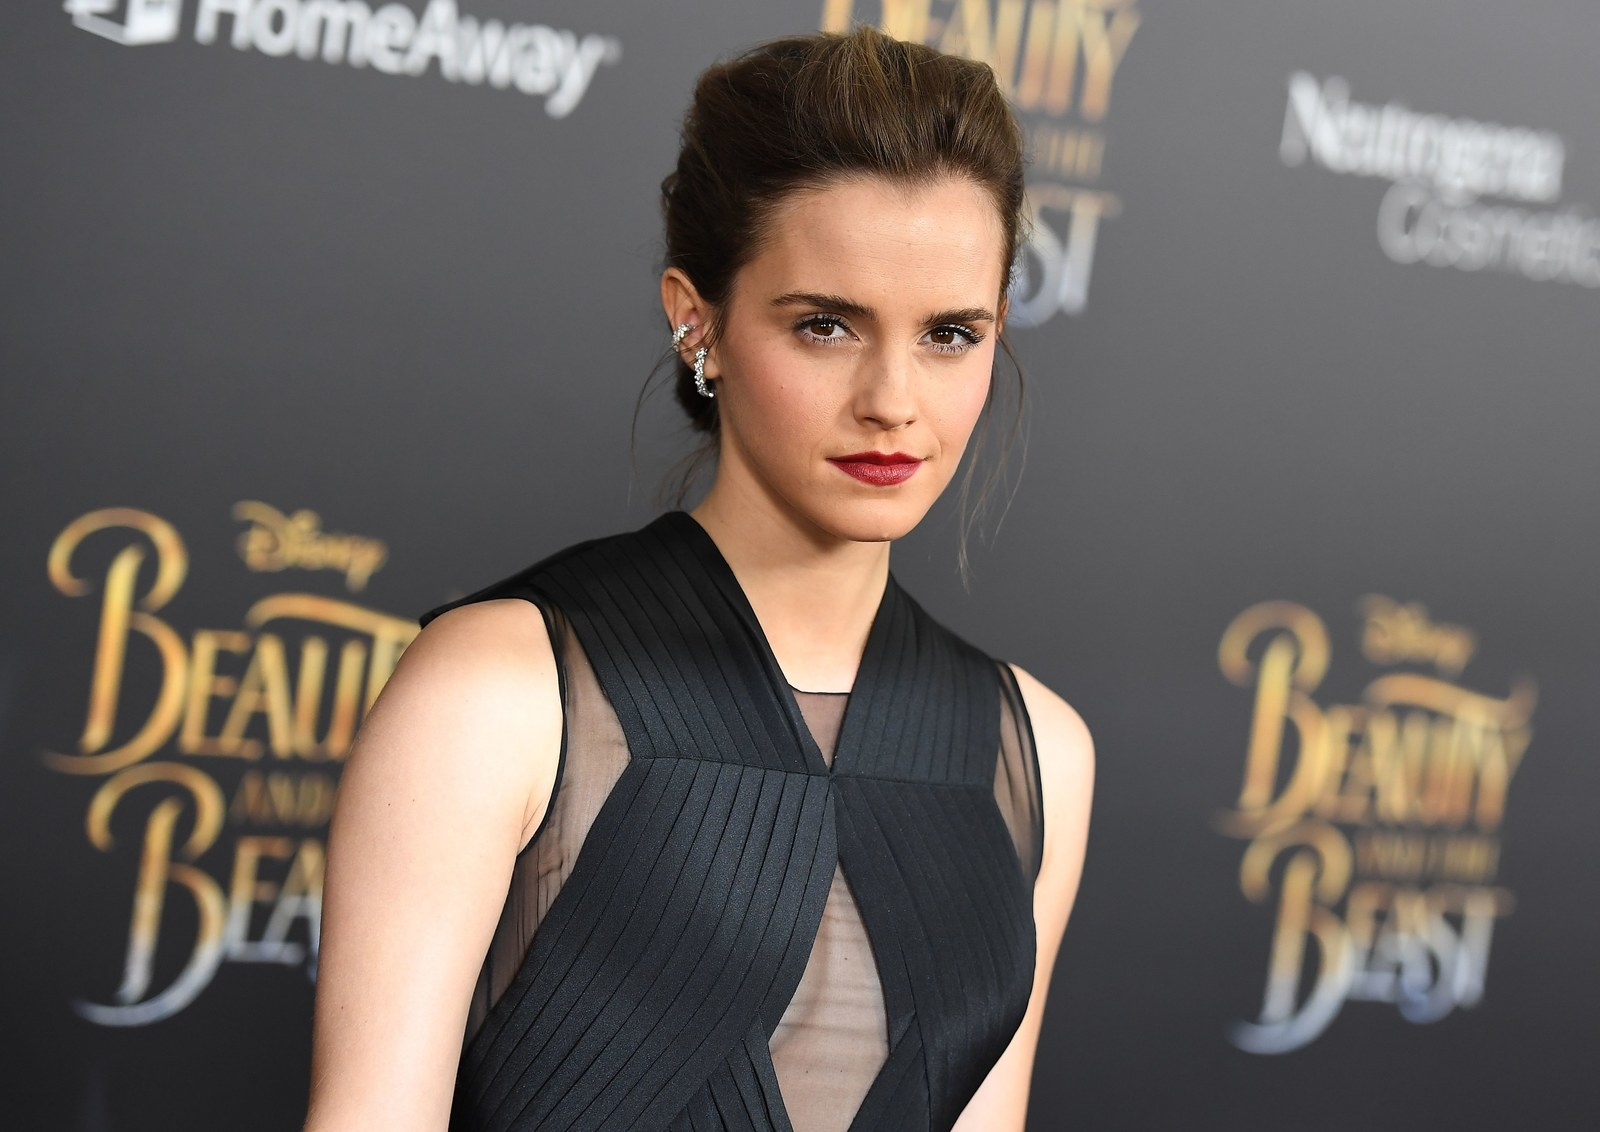 Private Photos Of Emma Watson, Other Female Celebs Allegedly Hacked And Posted Online